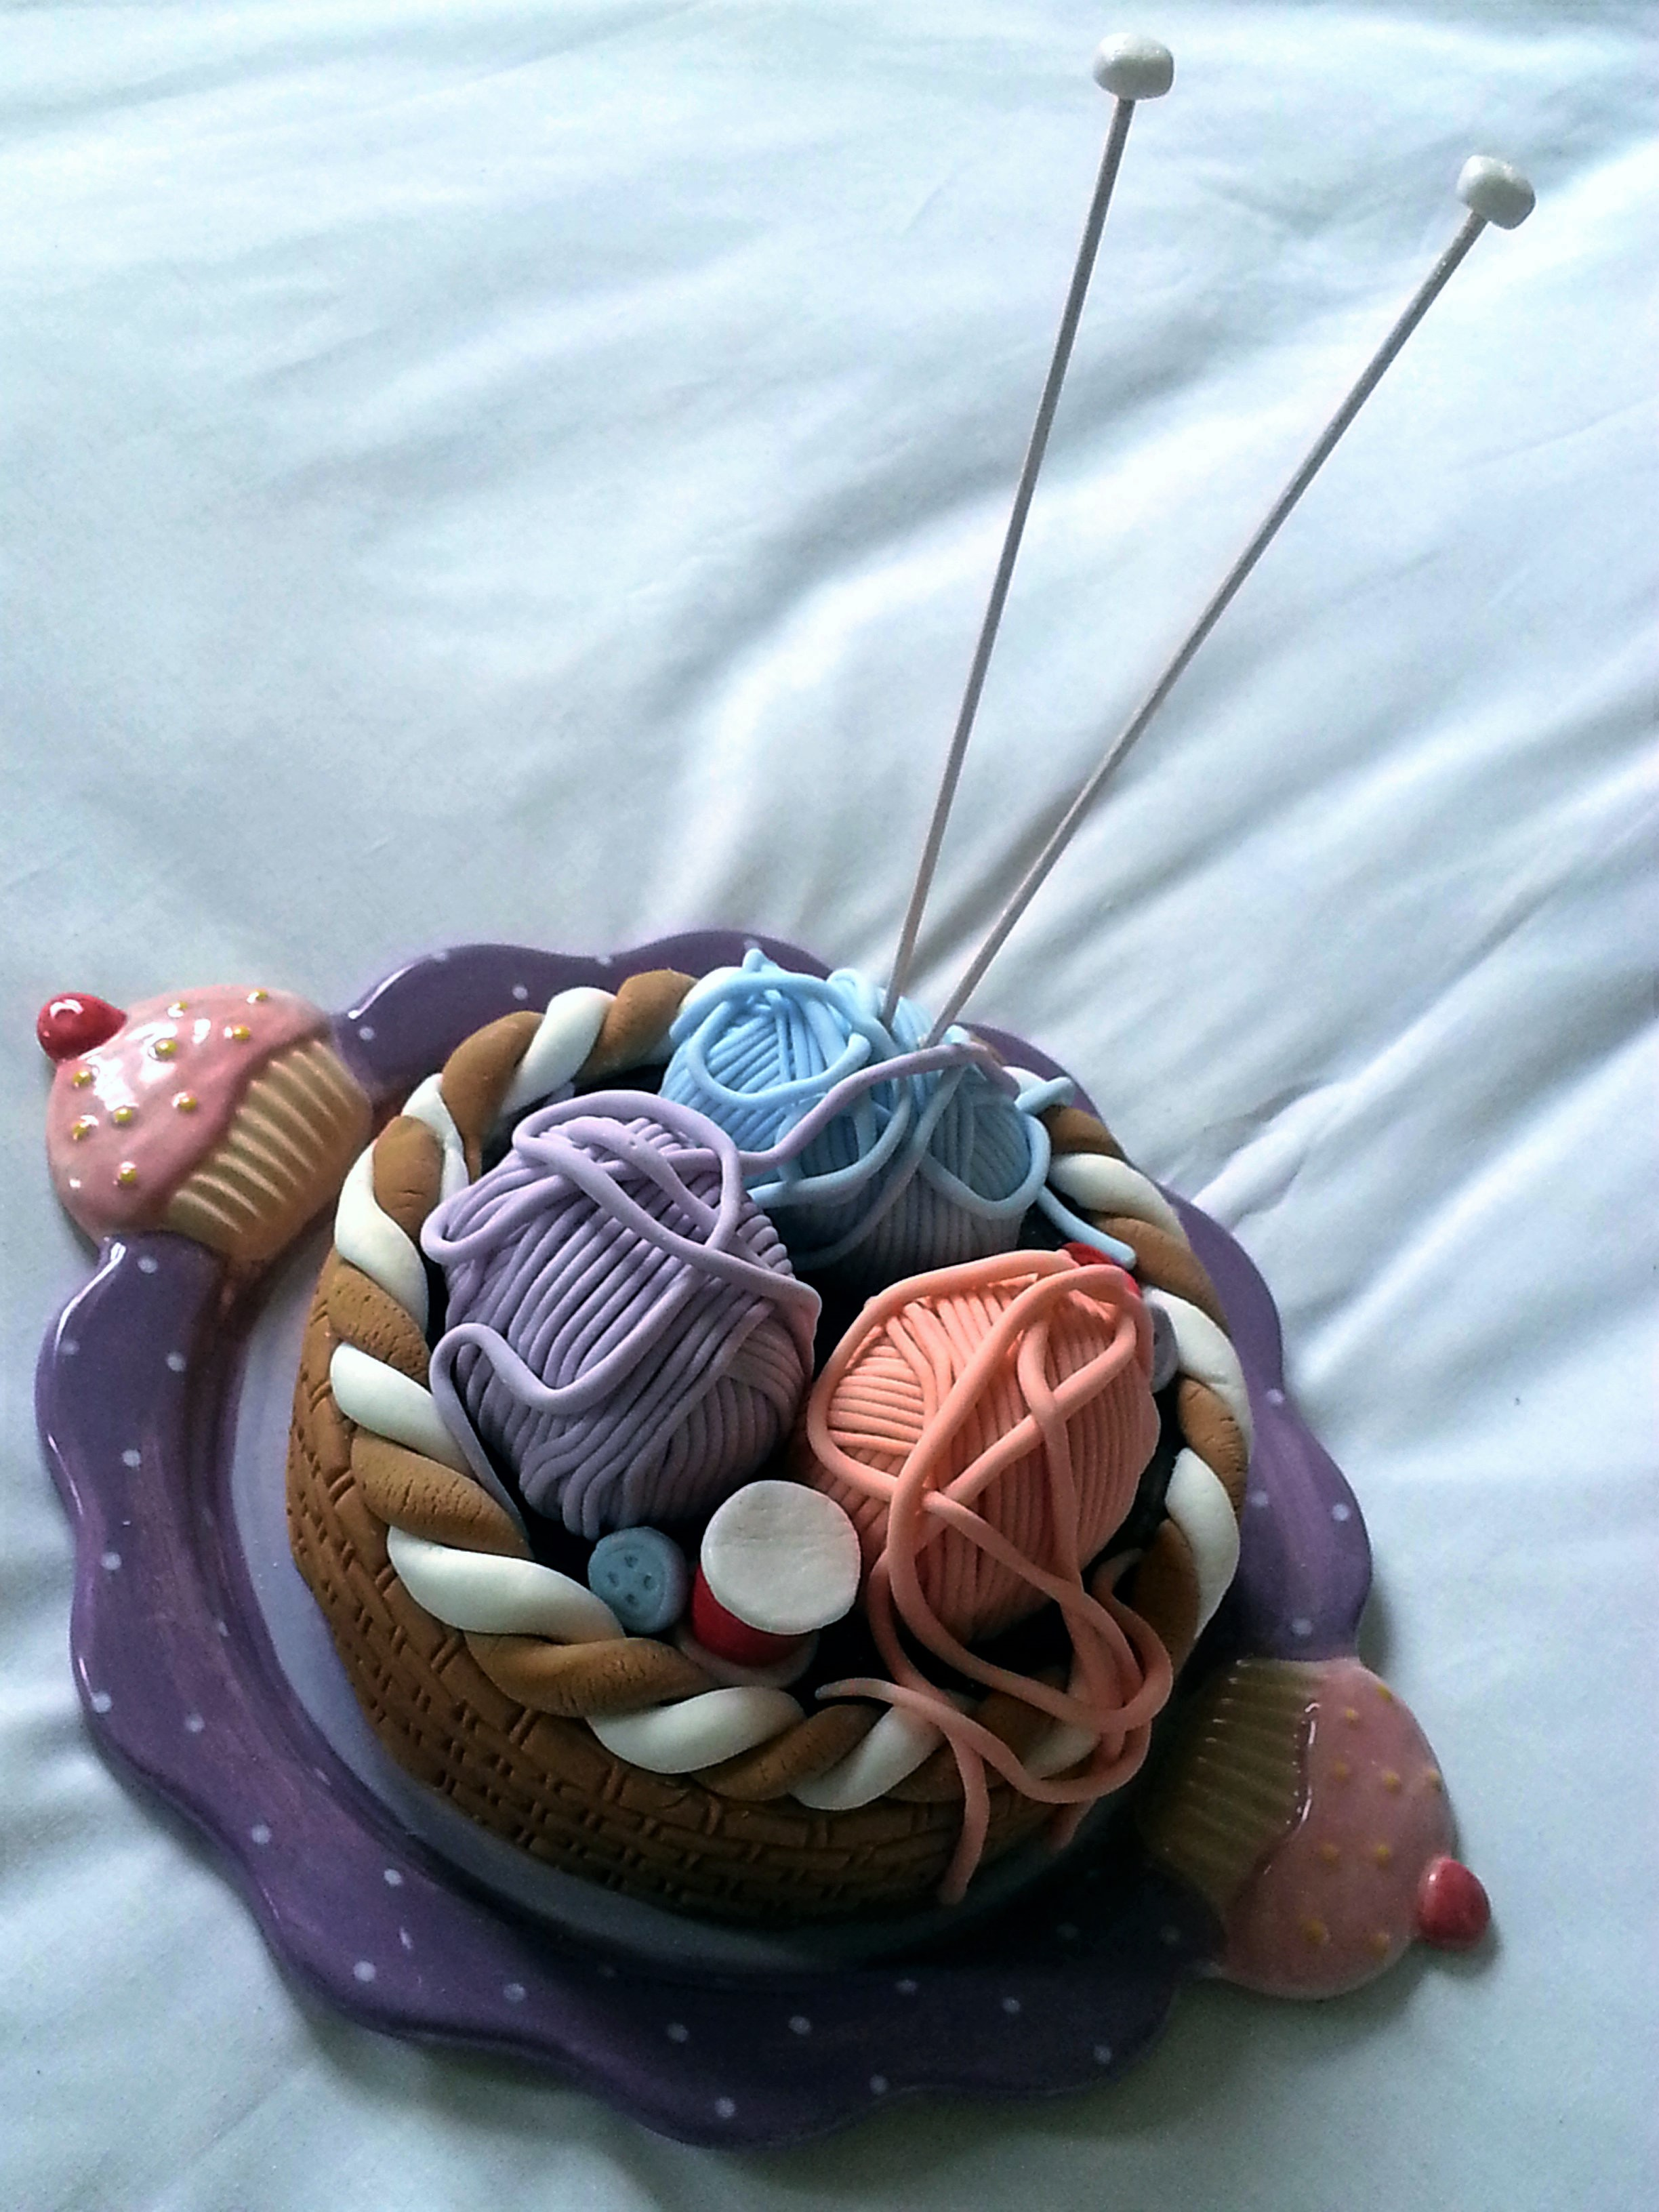 Wool Basket Cake